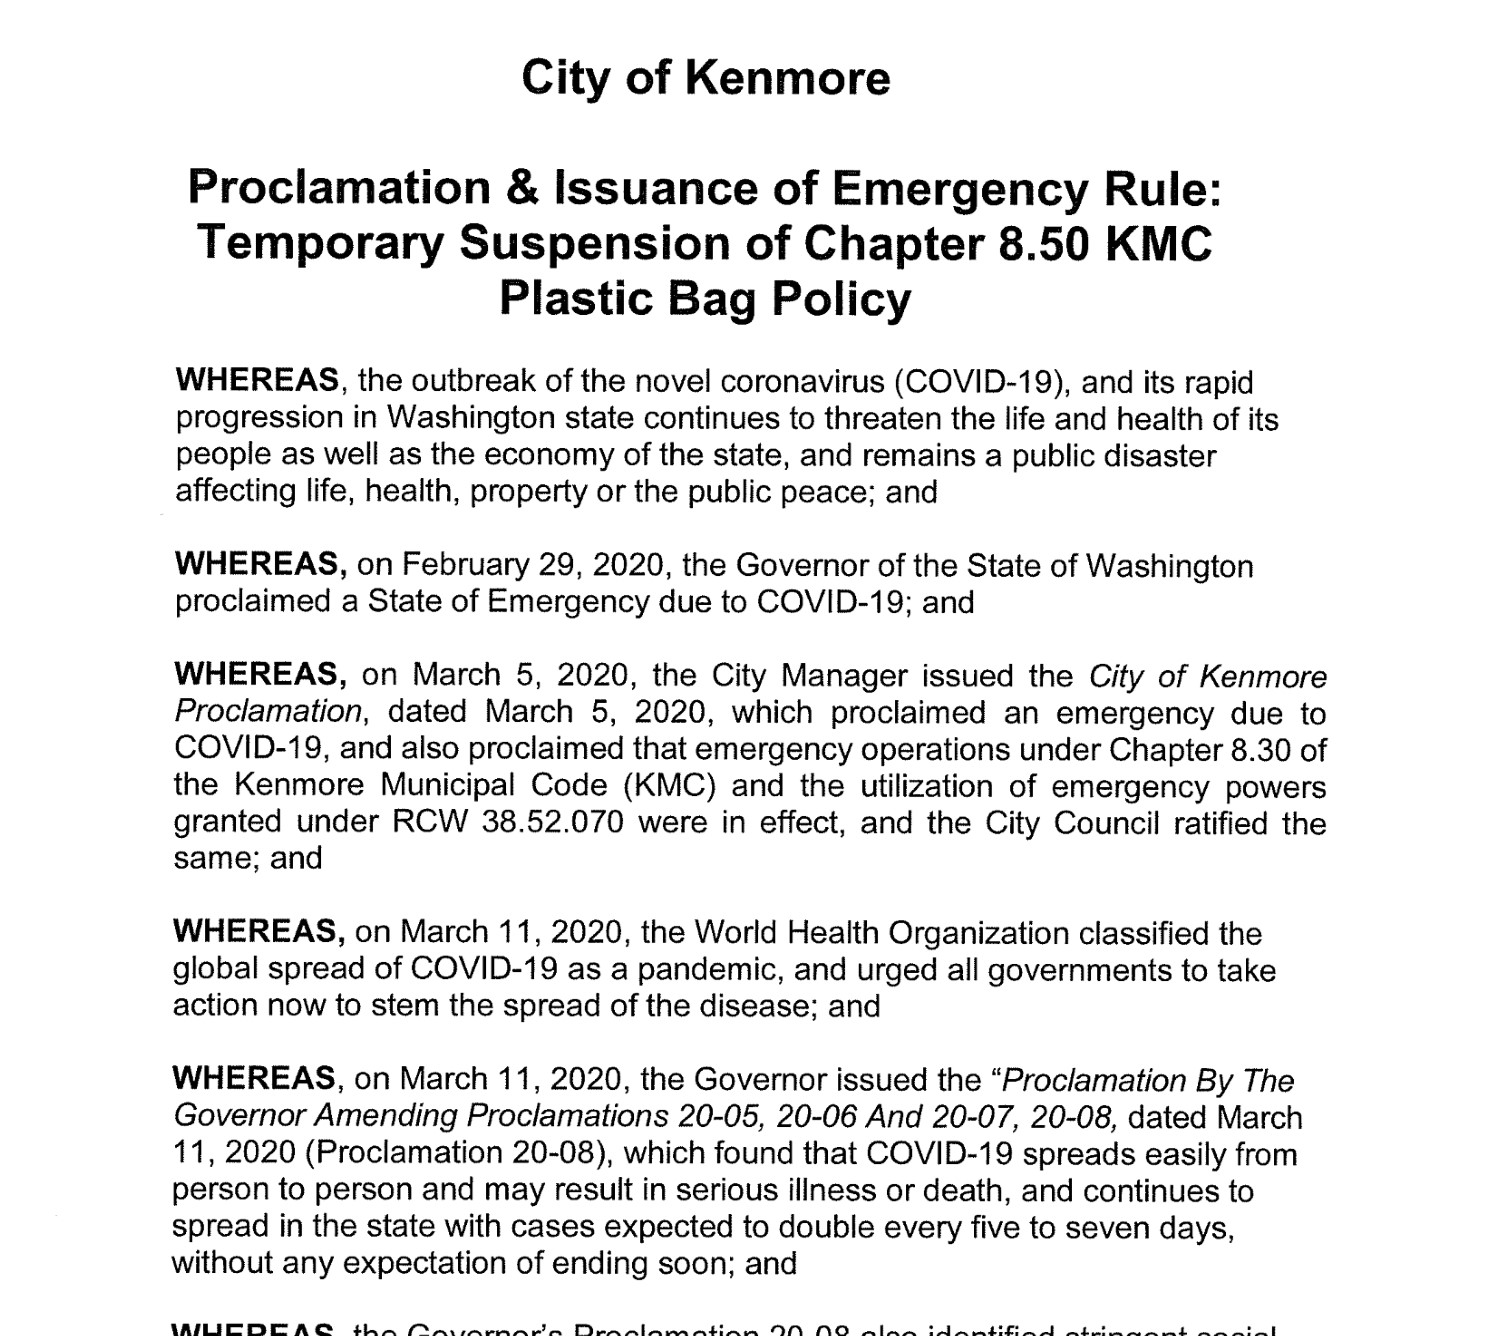 Kenmore extends four COVID-19 related proclamations and emergency rules to August 1